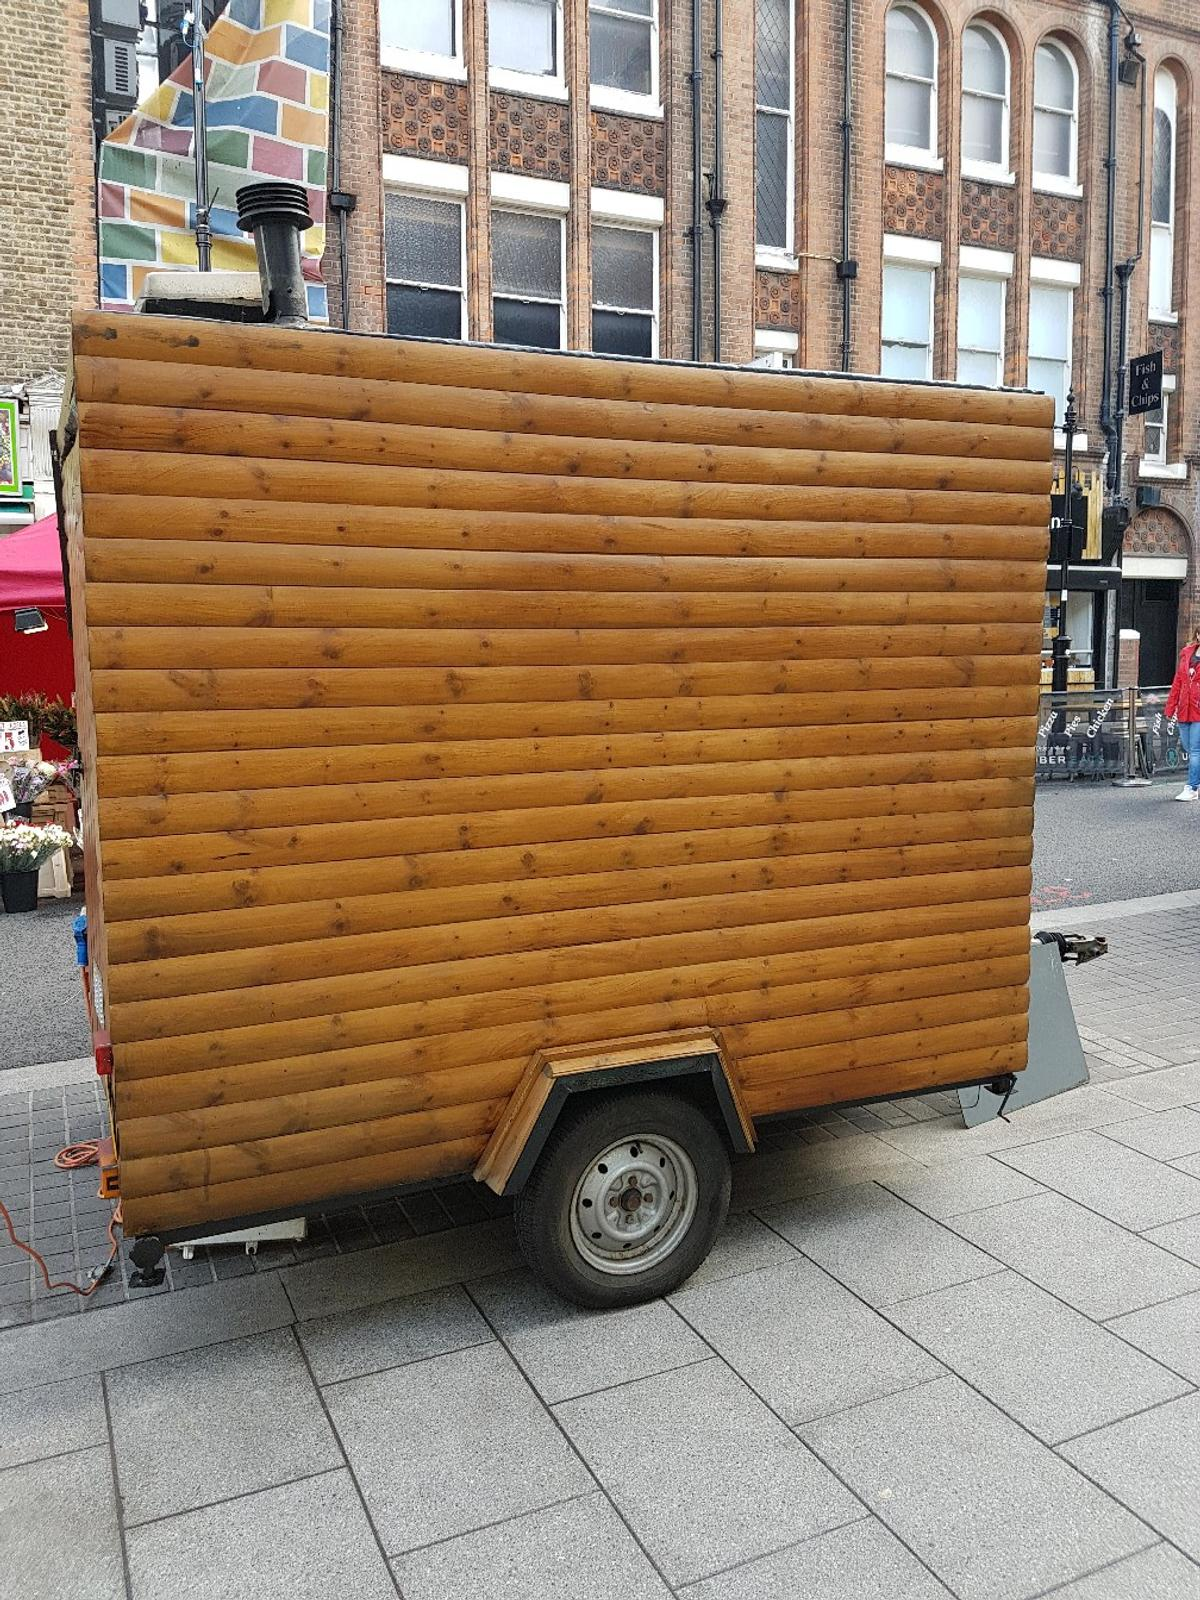 Unique Mobile Catering Trailer in CR0 London for £5,995 00 for sale